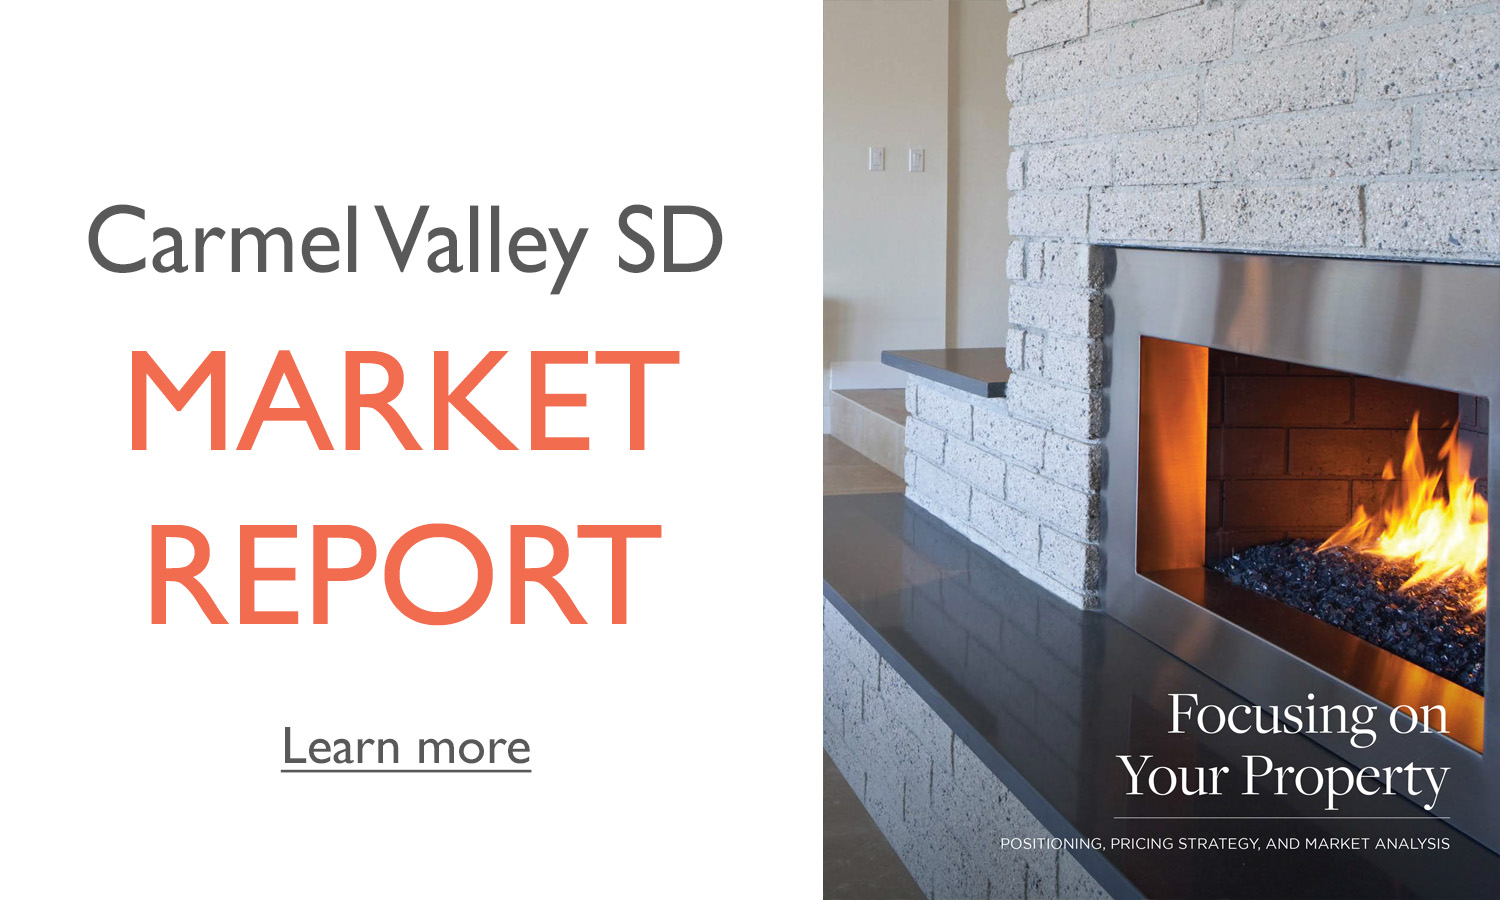 How's the real estate market in Carmel Valley? View EXCLUSIVE Content!